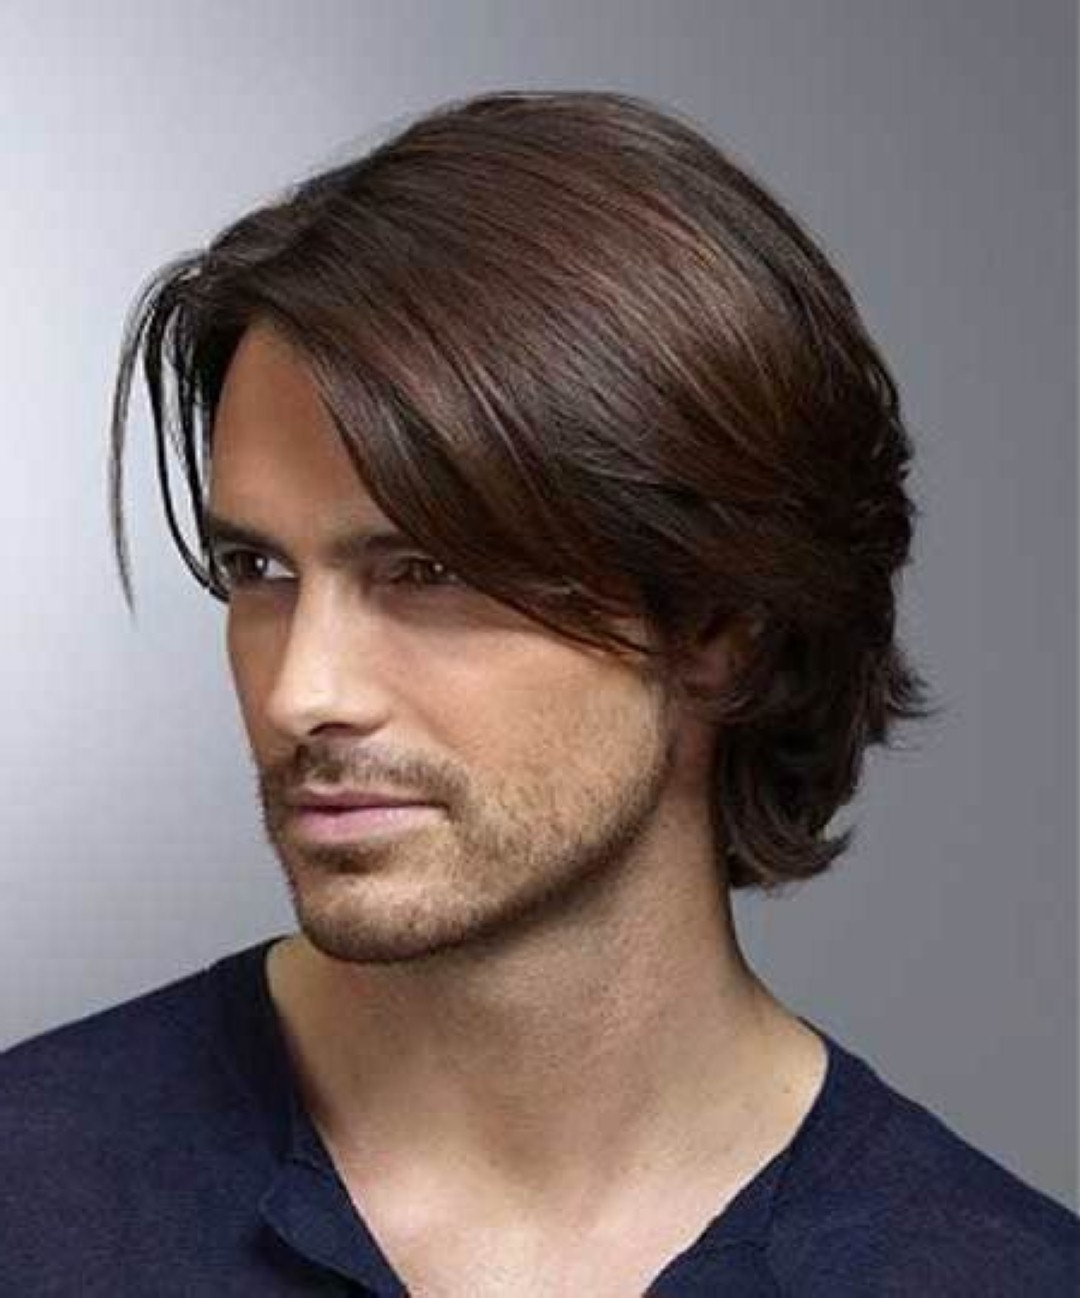 Medium Length Hairstyles Fine Straight Hair – Hairstyle For Women & Man Pertaining To Newest Medium Hairstyles For Men With Fine Straight Hair (View 14 of 20)